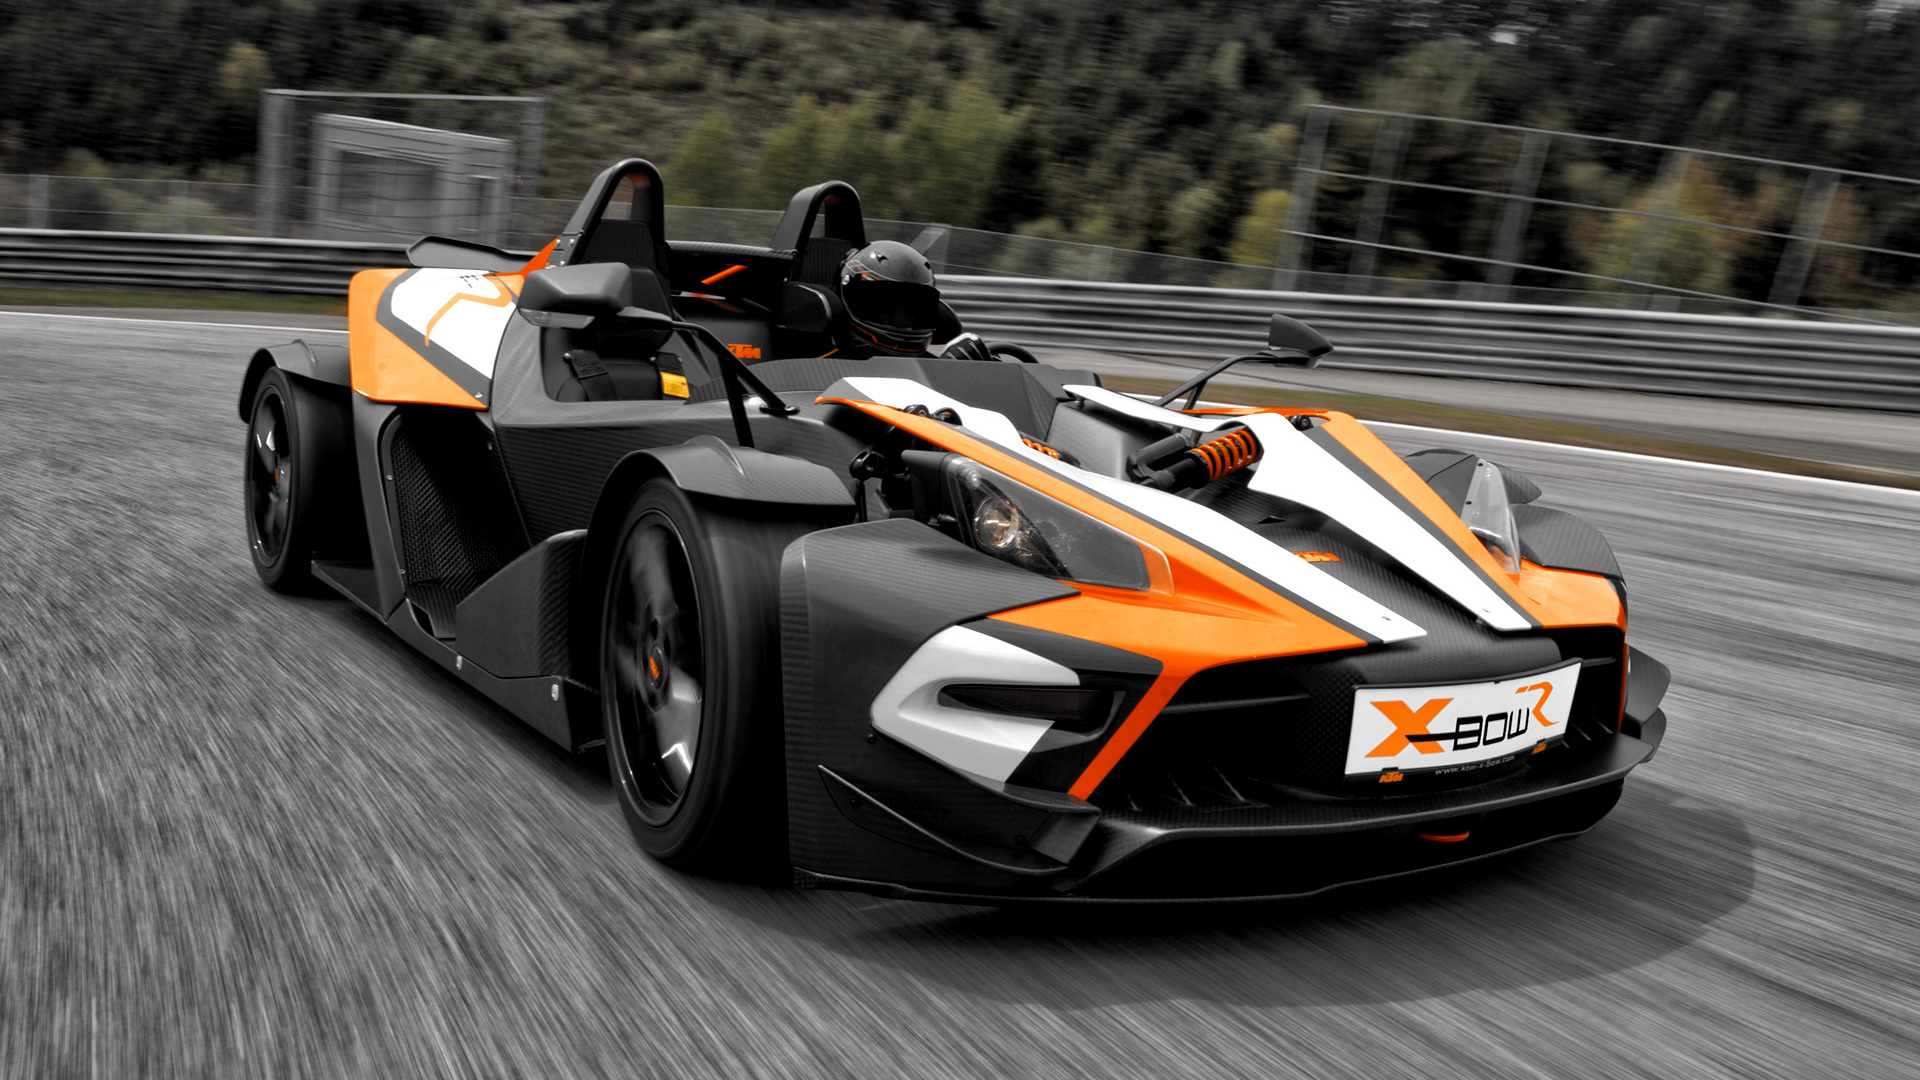 KTM X-Bow R (2011) Wallpapers And HD Images